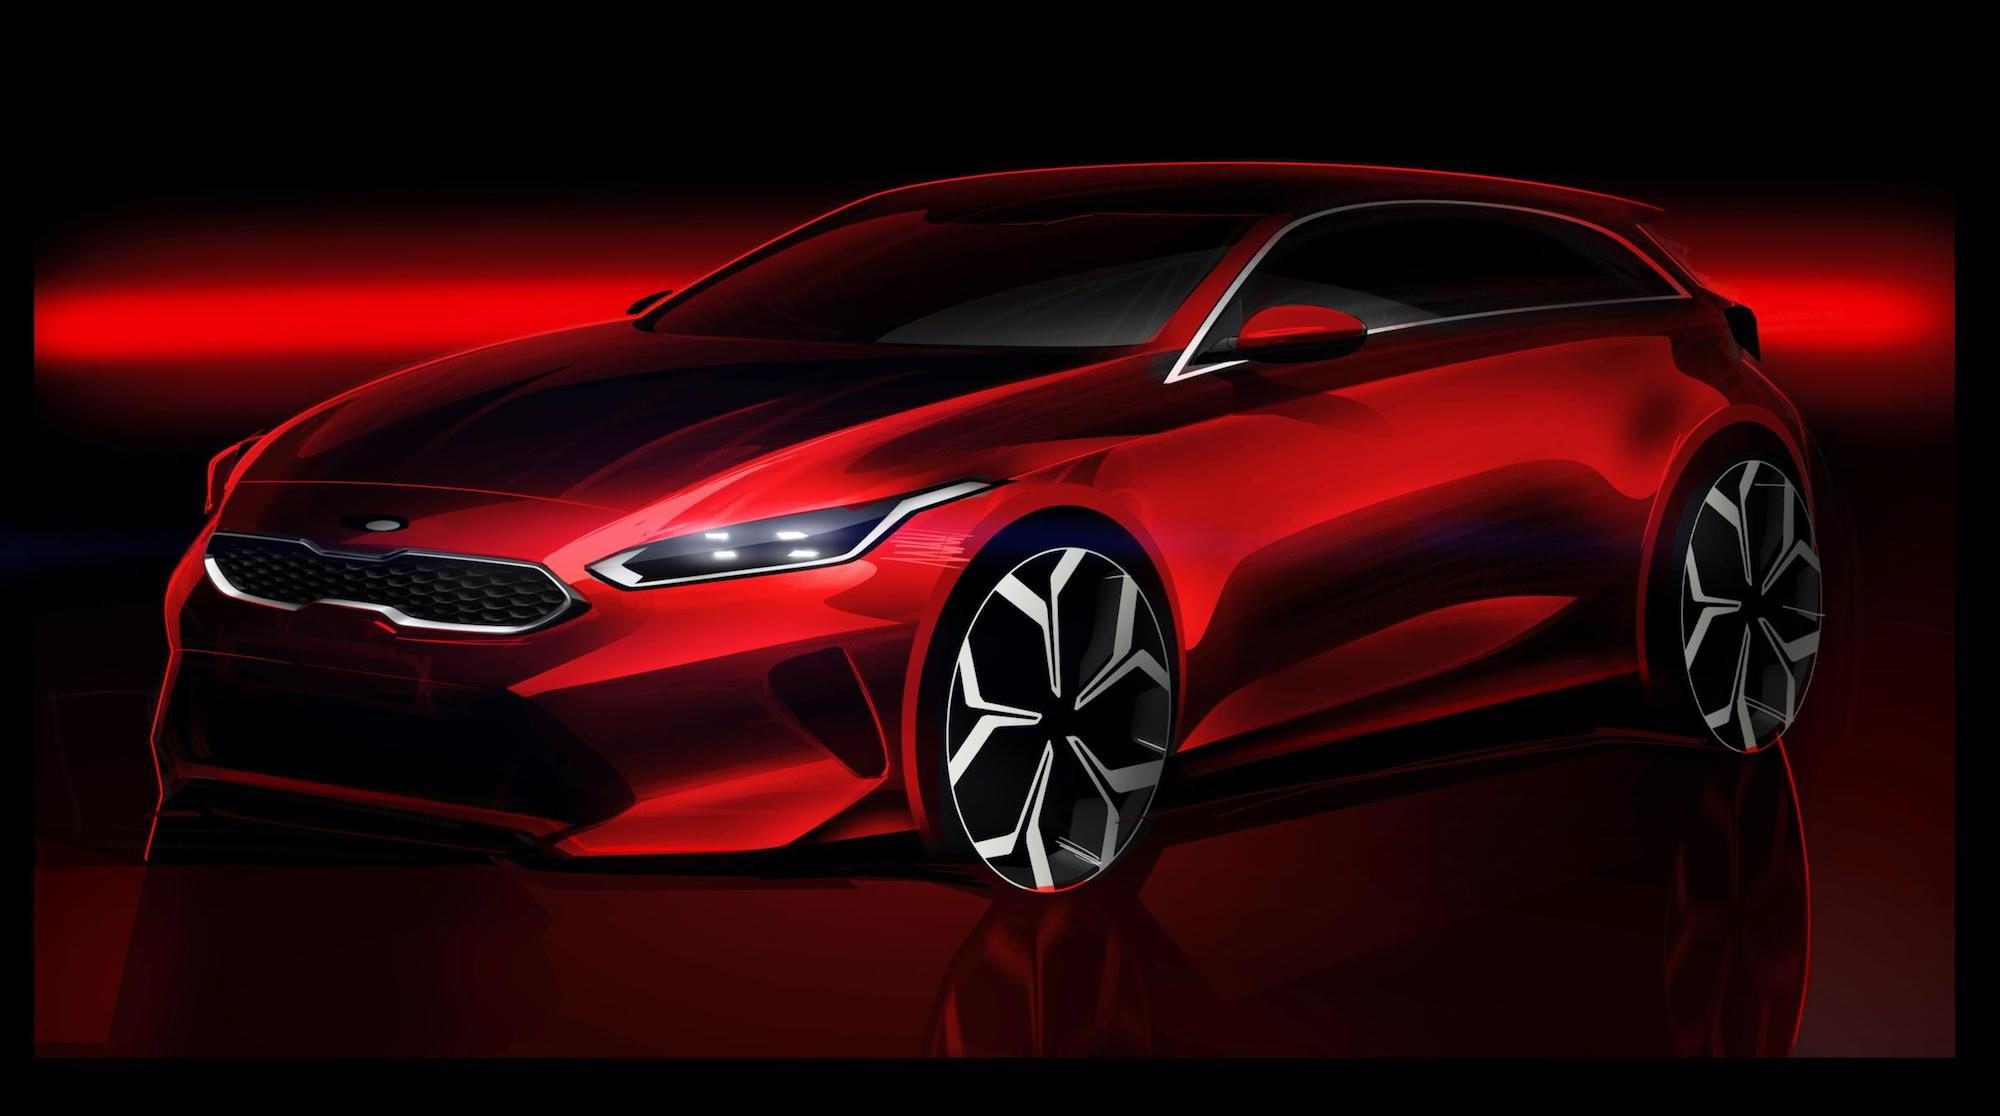 Kia Ceed teased ahead of Geneva Motor Show reveal